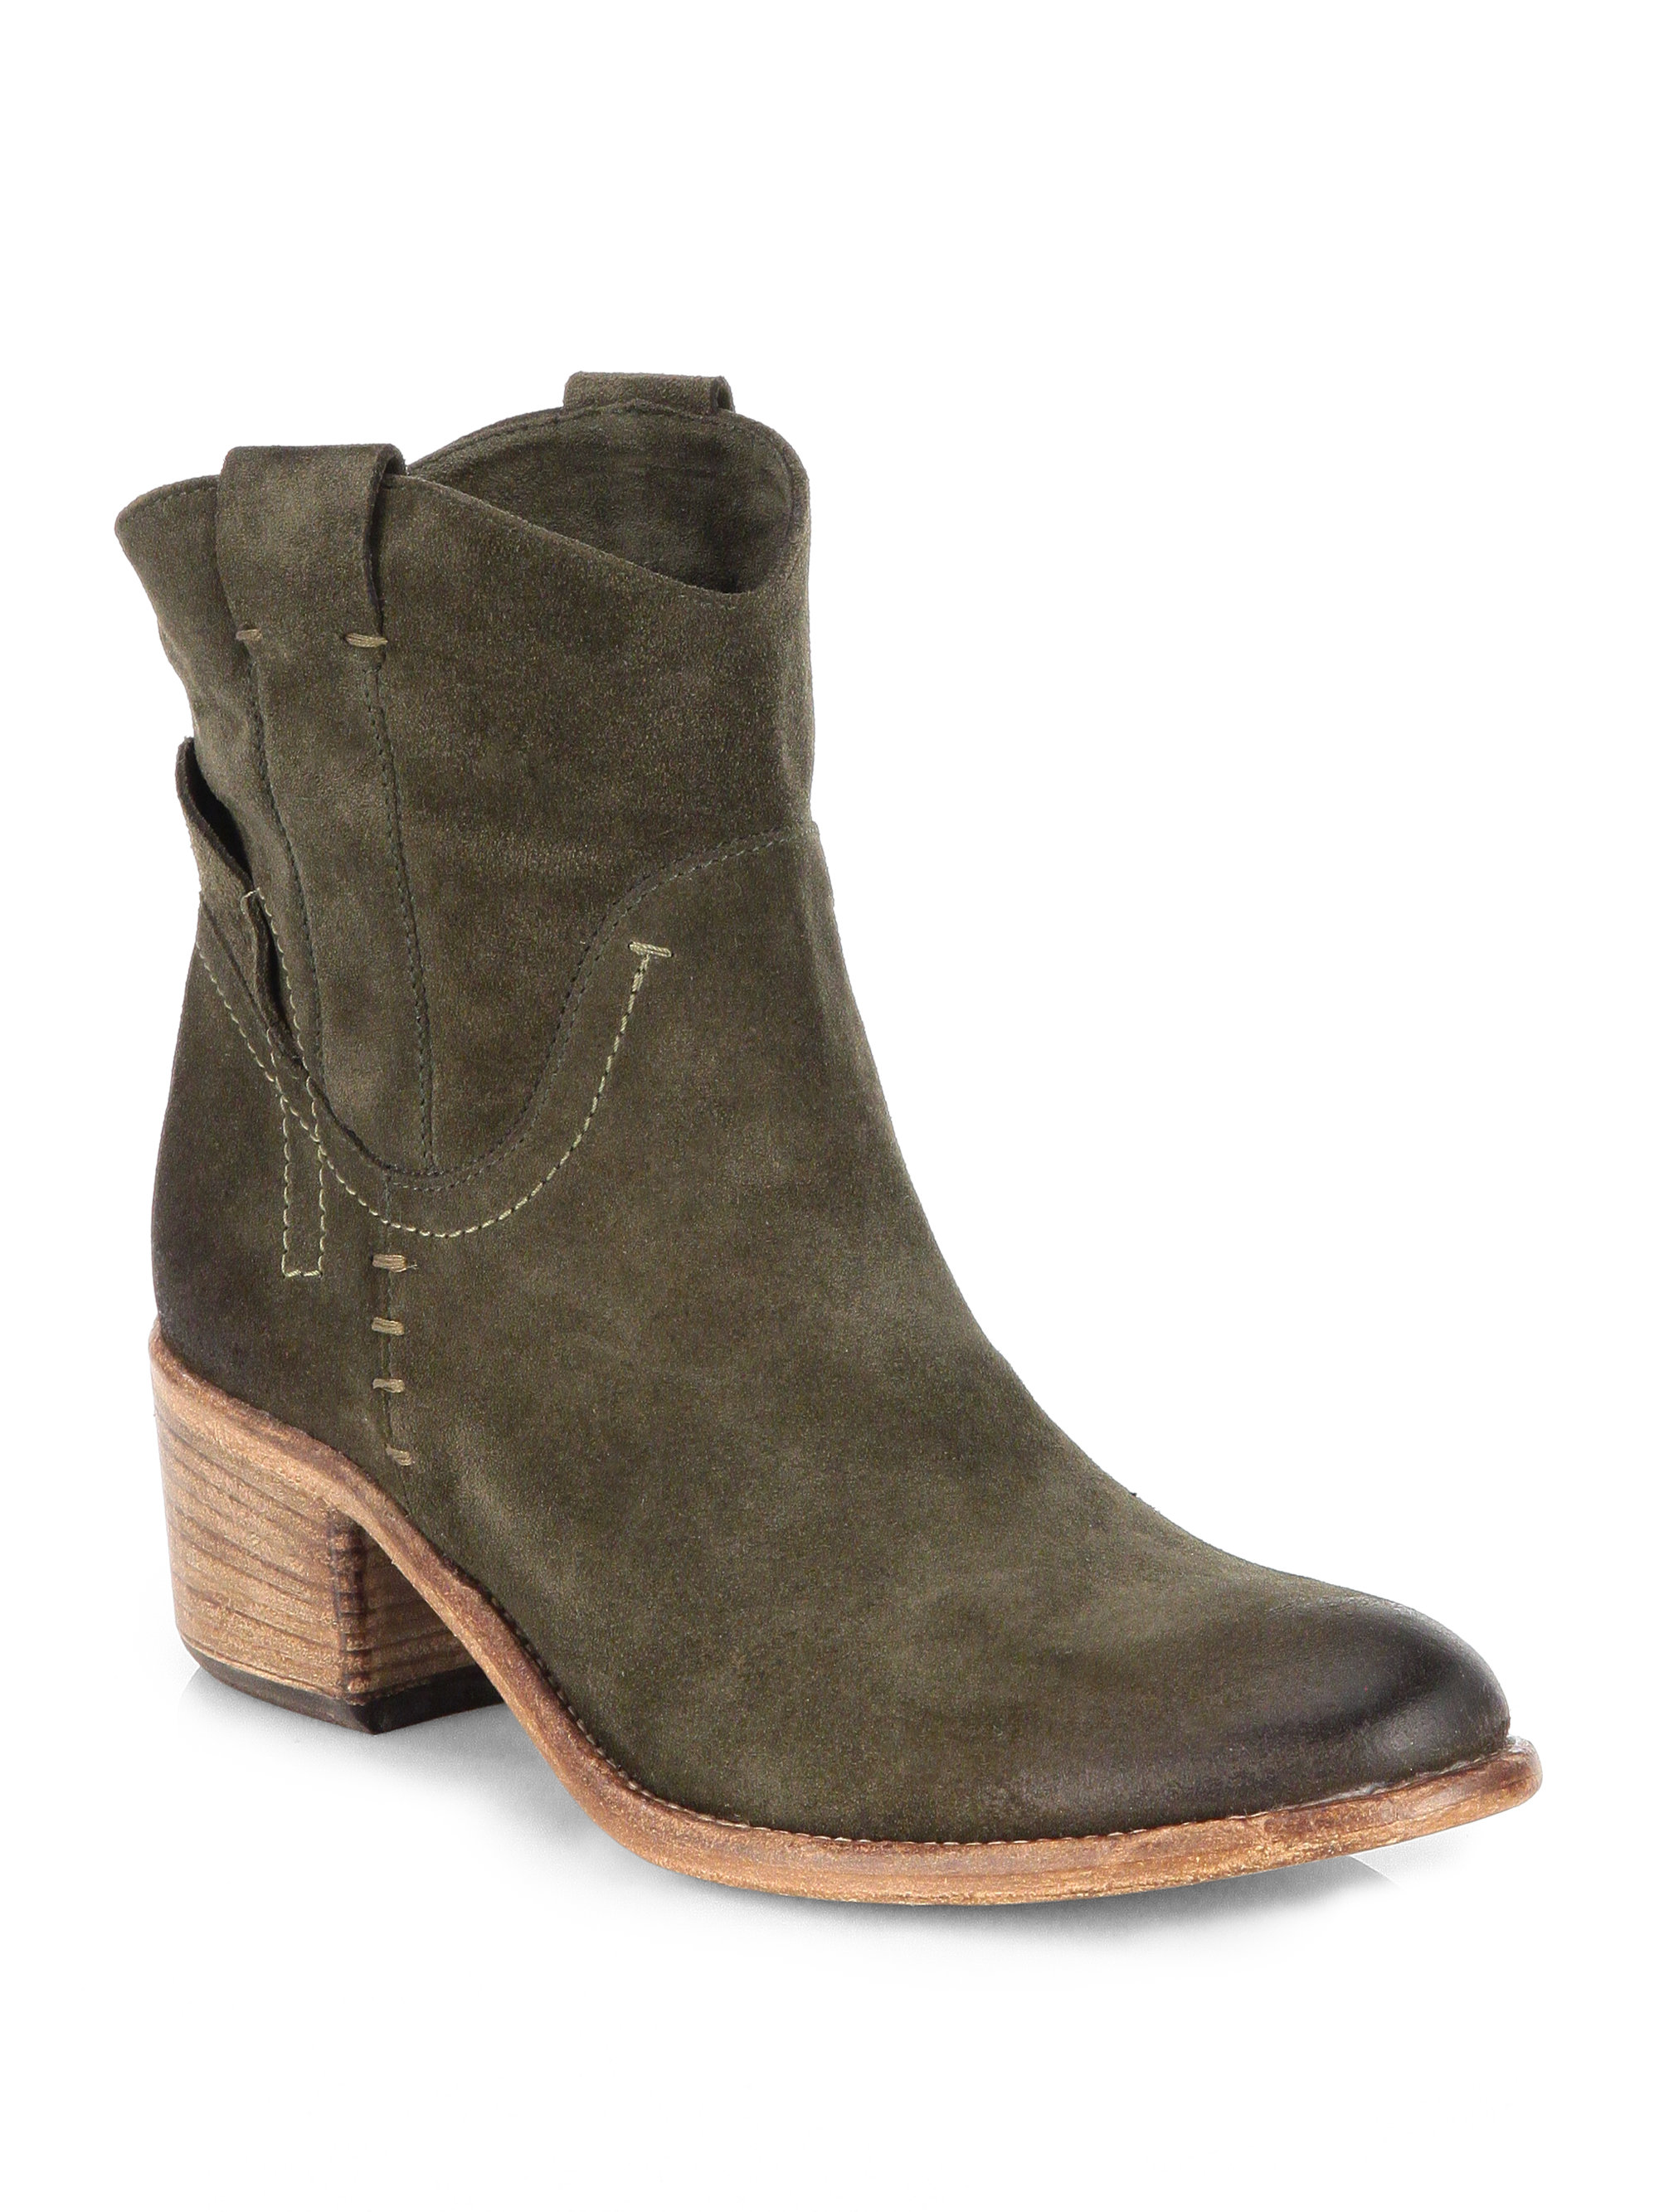 Alberto fermani Volo Suede Ankle Boots in Green